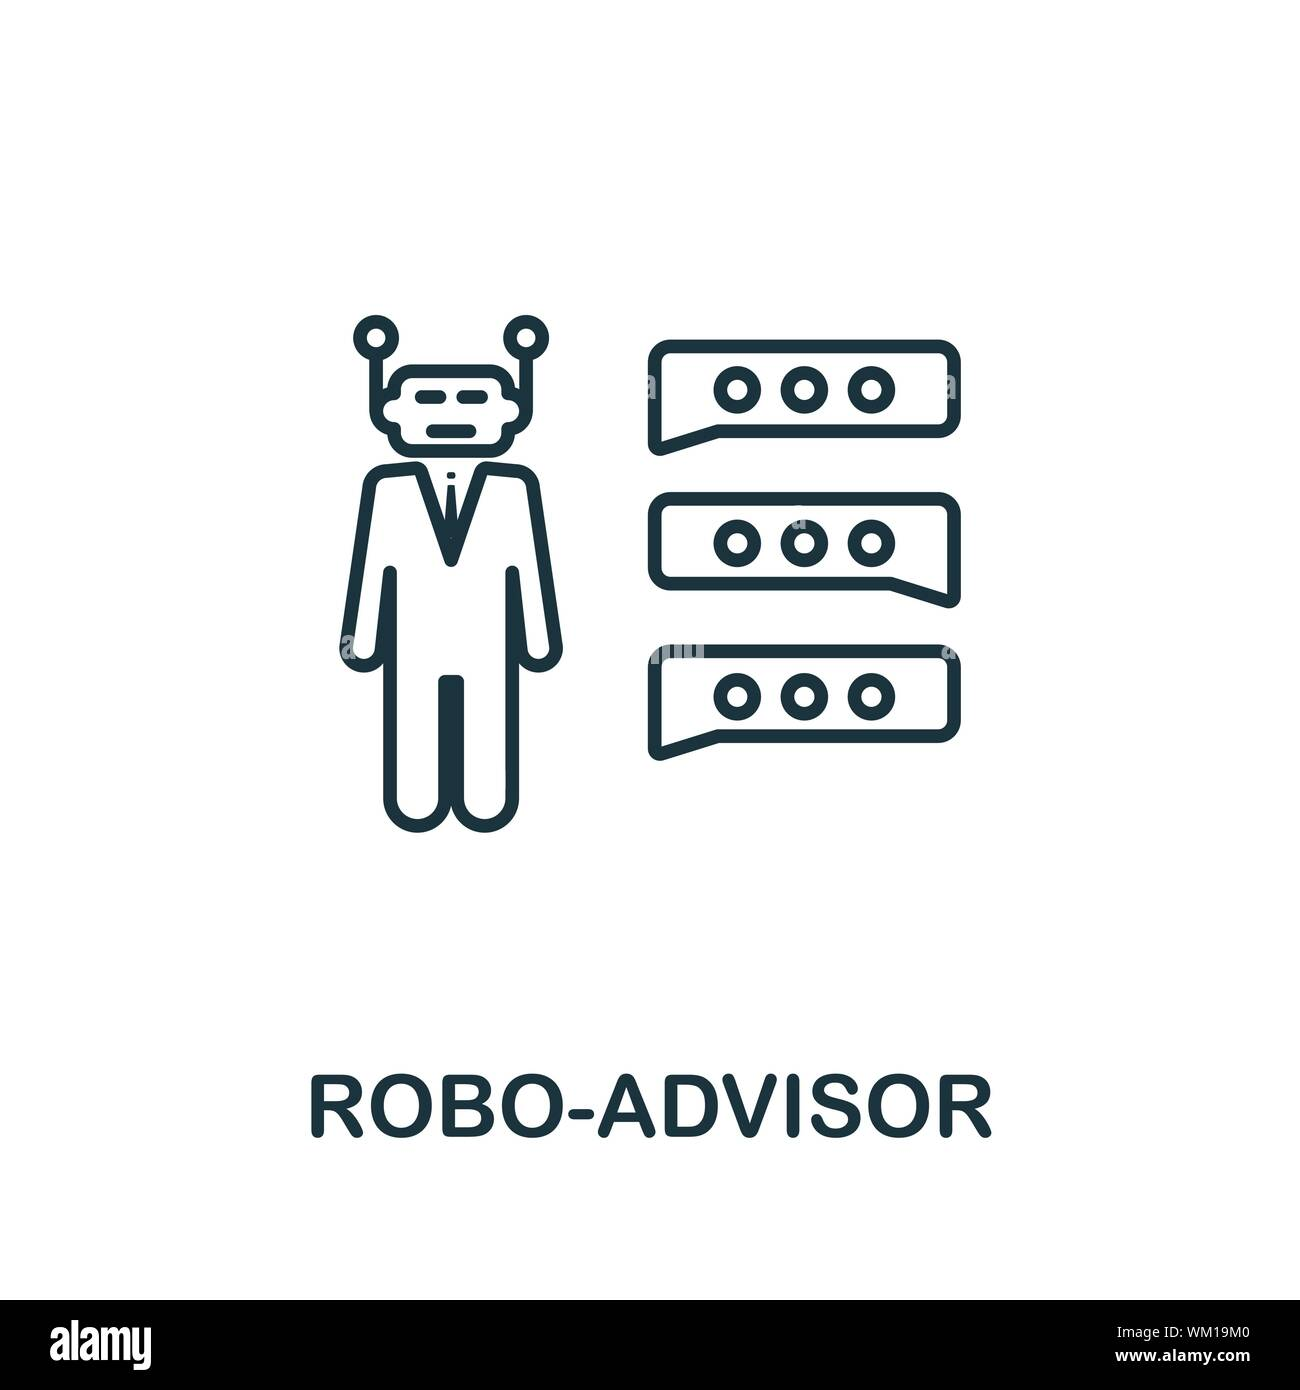 Robo-Advisor outline icon. Thin line concept element from fintech technology icons collection. Creative Robo-Advisor icon for mobile apps and web Stock Vector